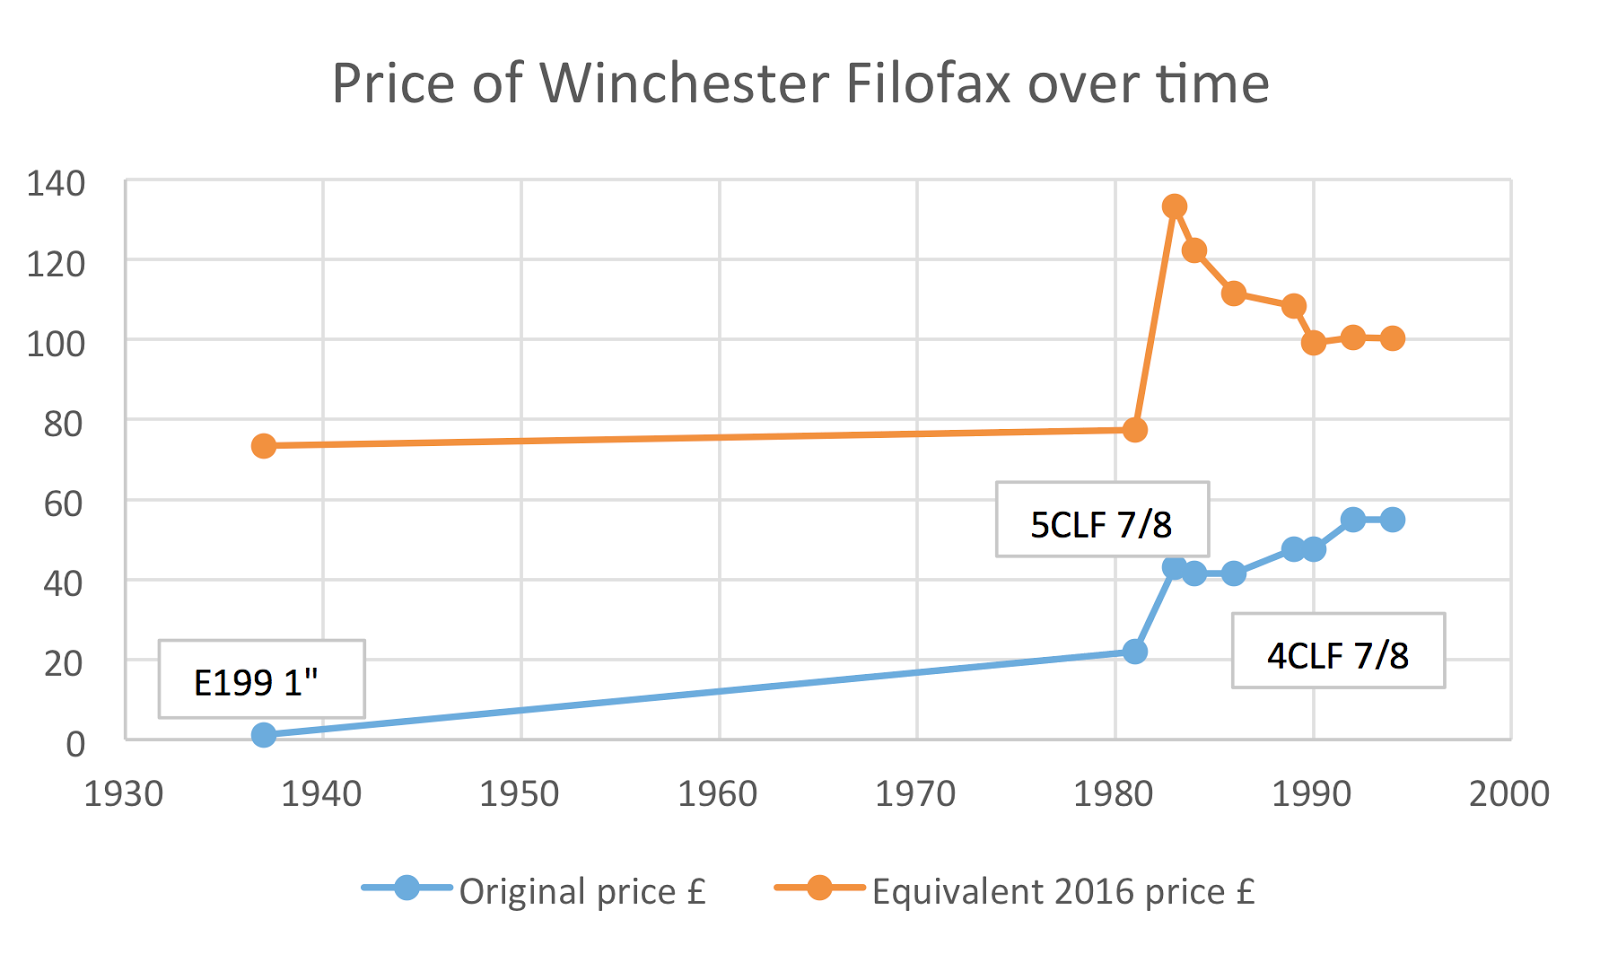 Guest Post - Filofax Winchester Price History by gmax